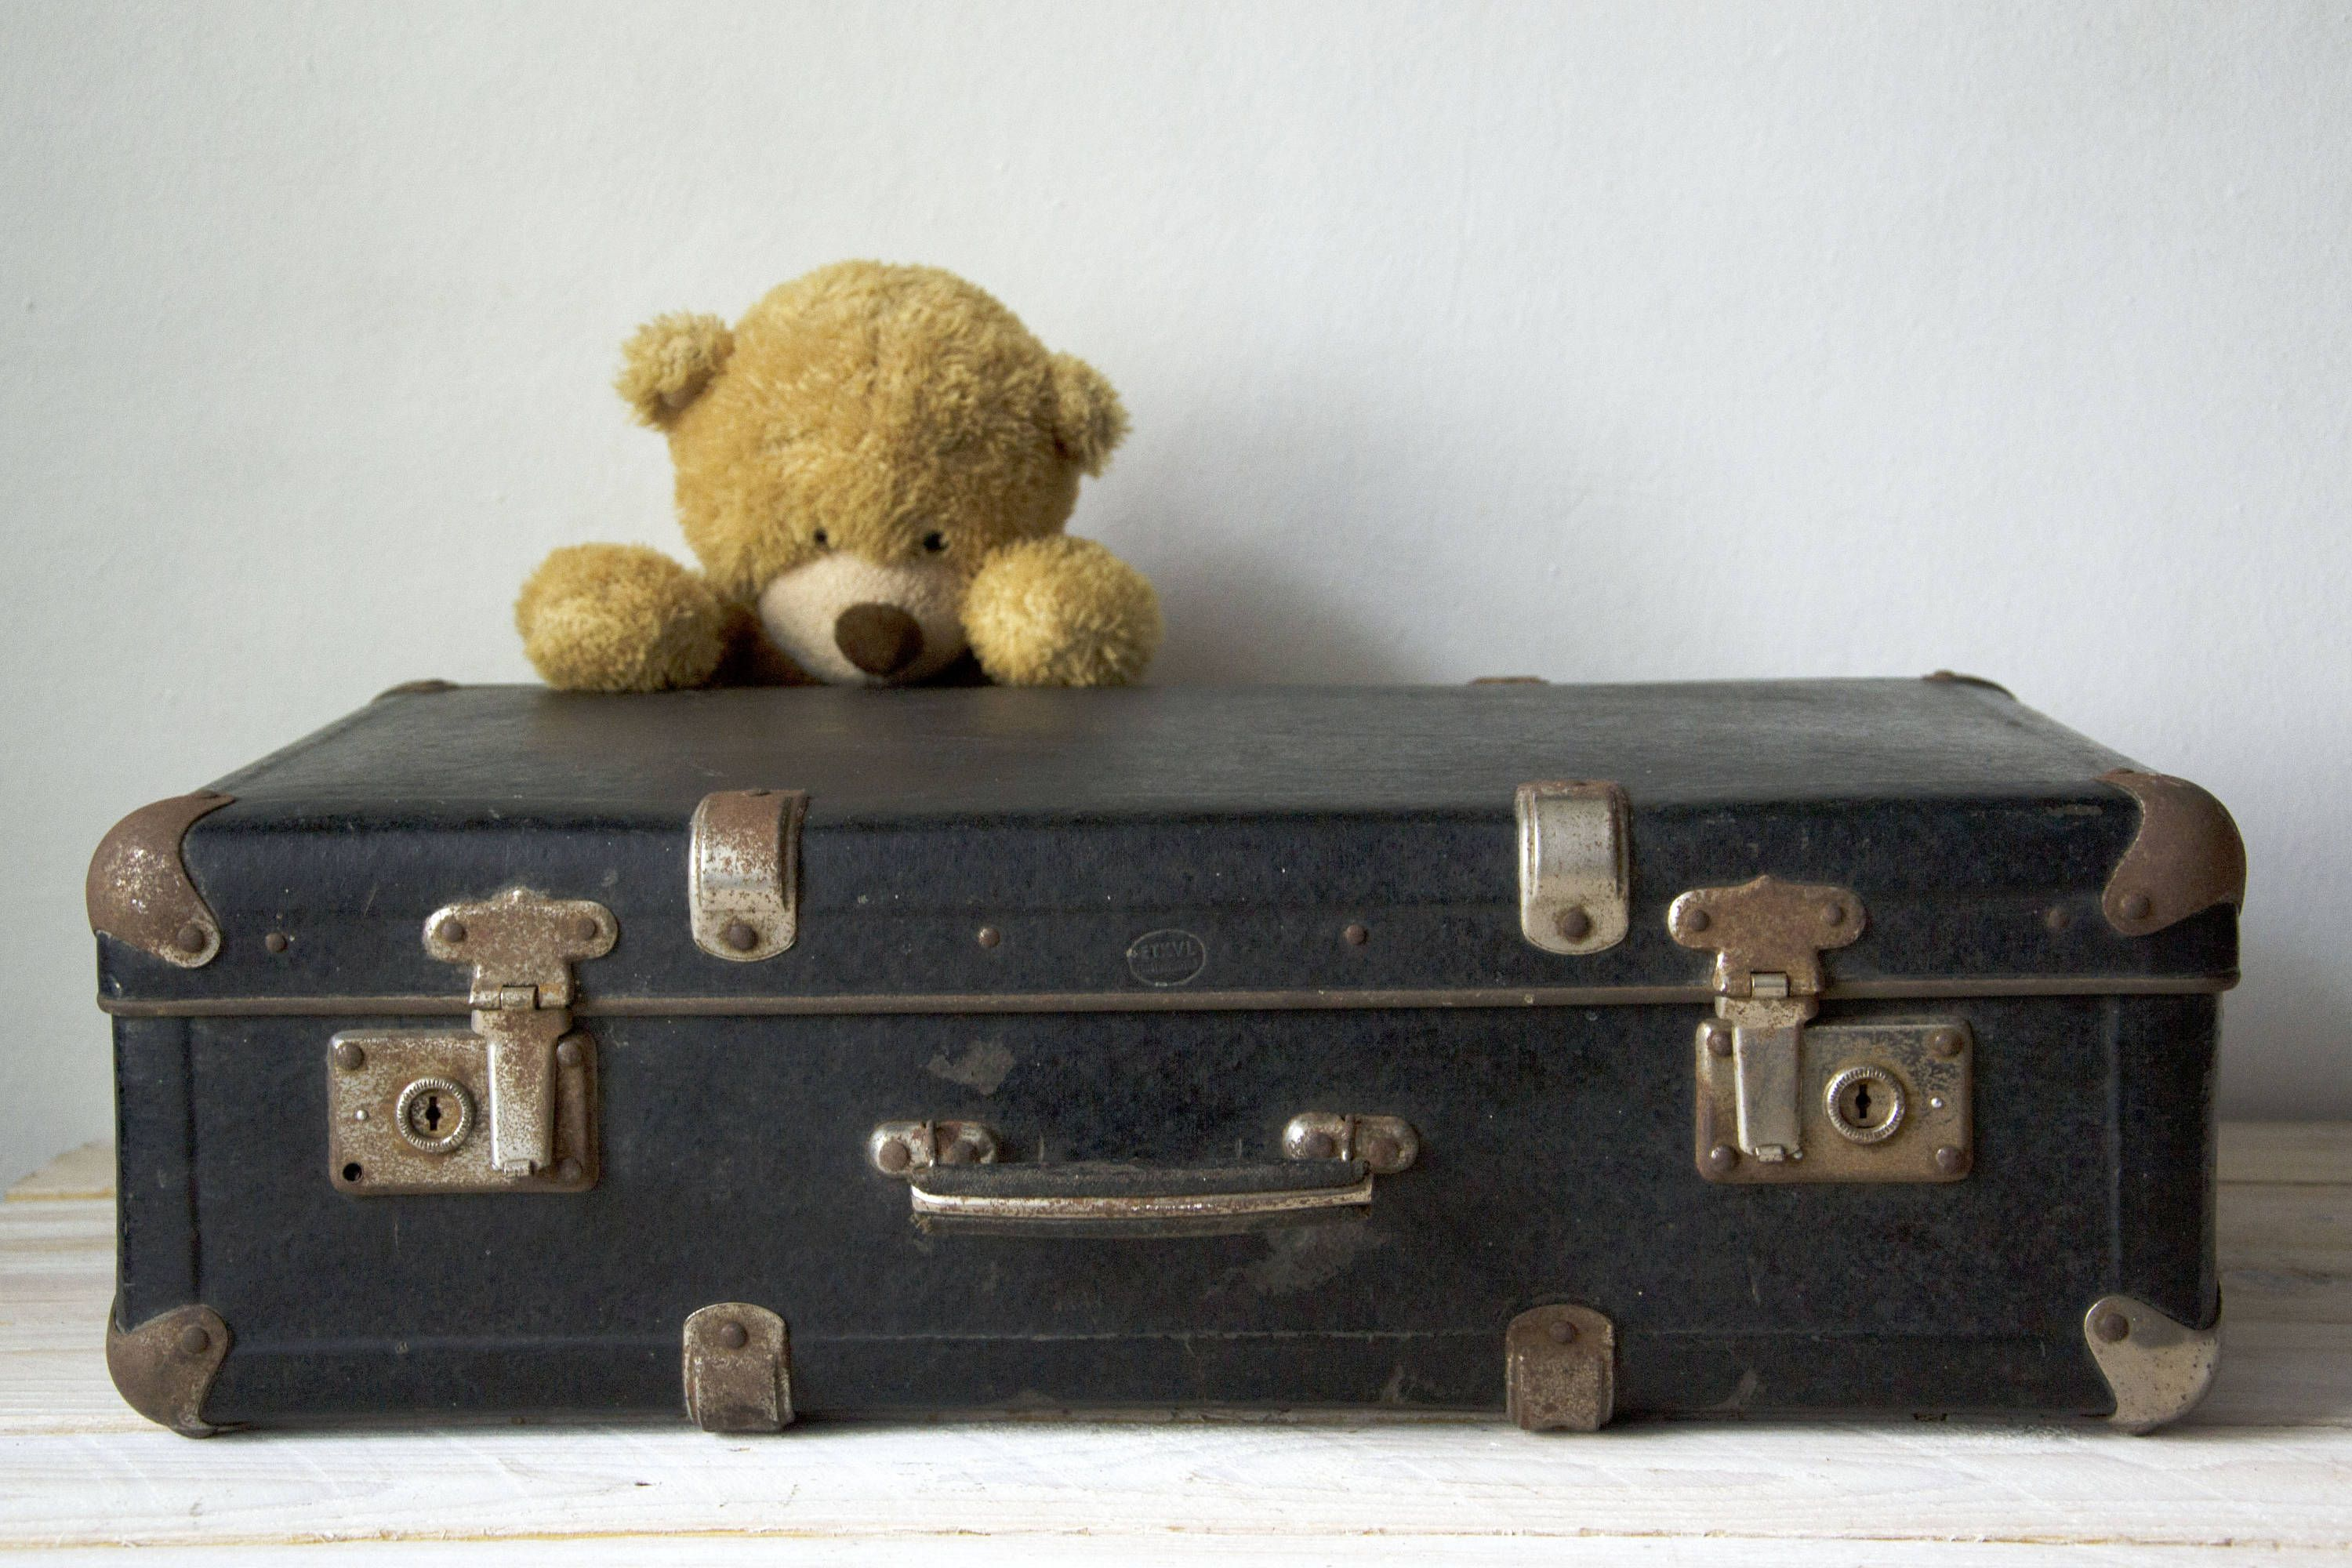 Awesome Vintage Black Suitcase, Big Suitcase, Large Suitcase, Briefcase, Old  Suitcase, Storage